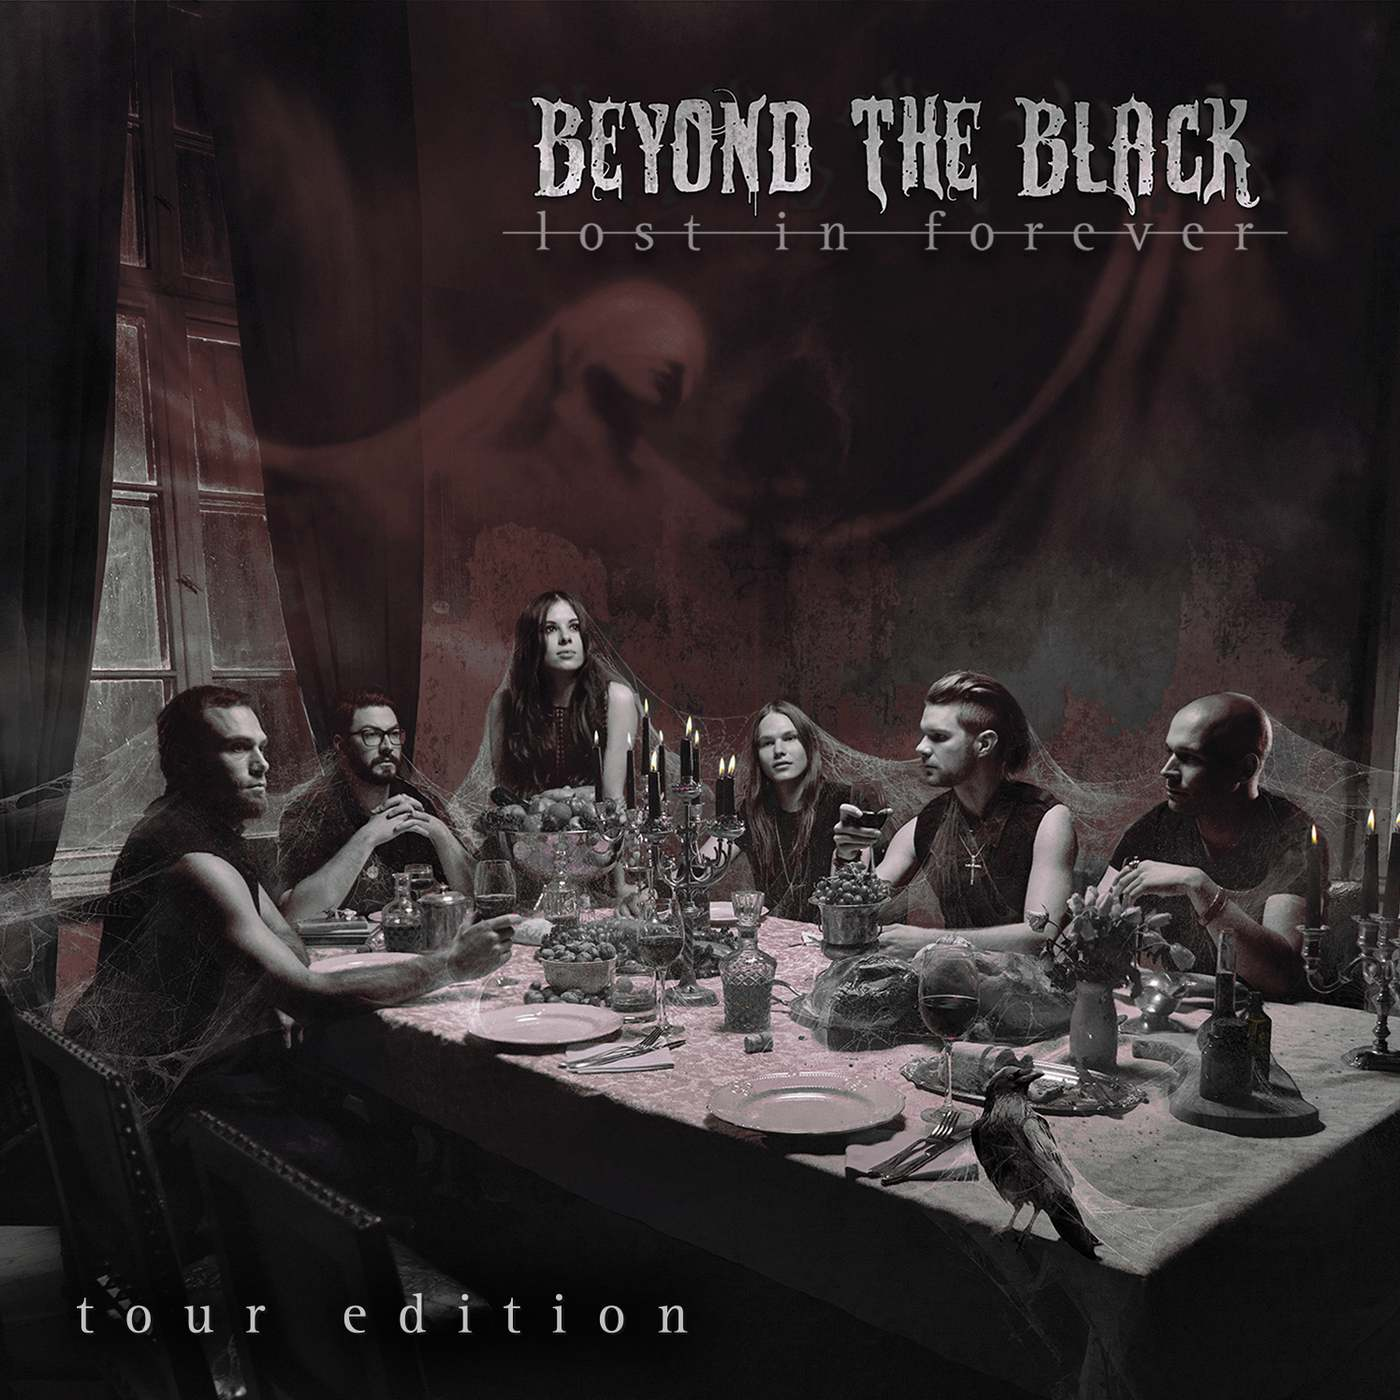 Beyond the Black: Lost In Forever - Tour Edition (2017) Book Cover